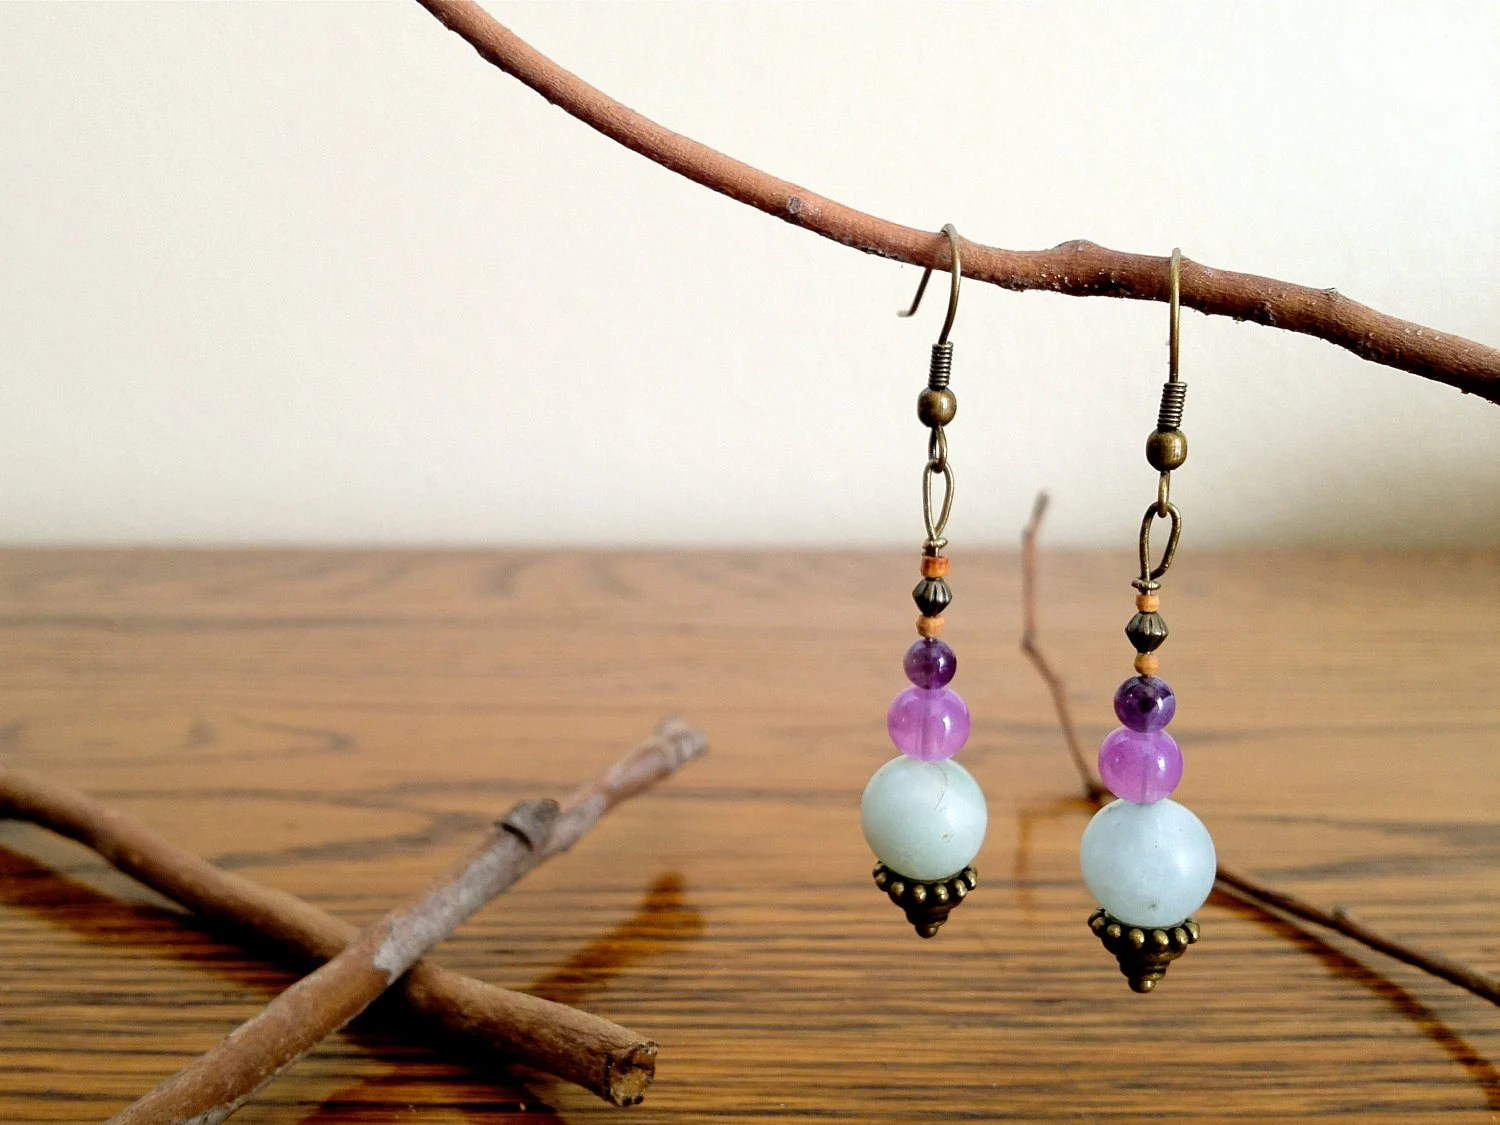 Delicate Handcrafted Dangle Earrings - Amazonite, Glass, Brass, & Wood - Purple Mint - NataDulce